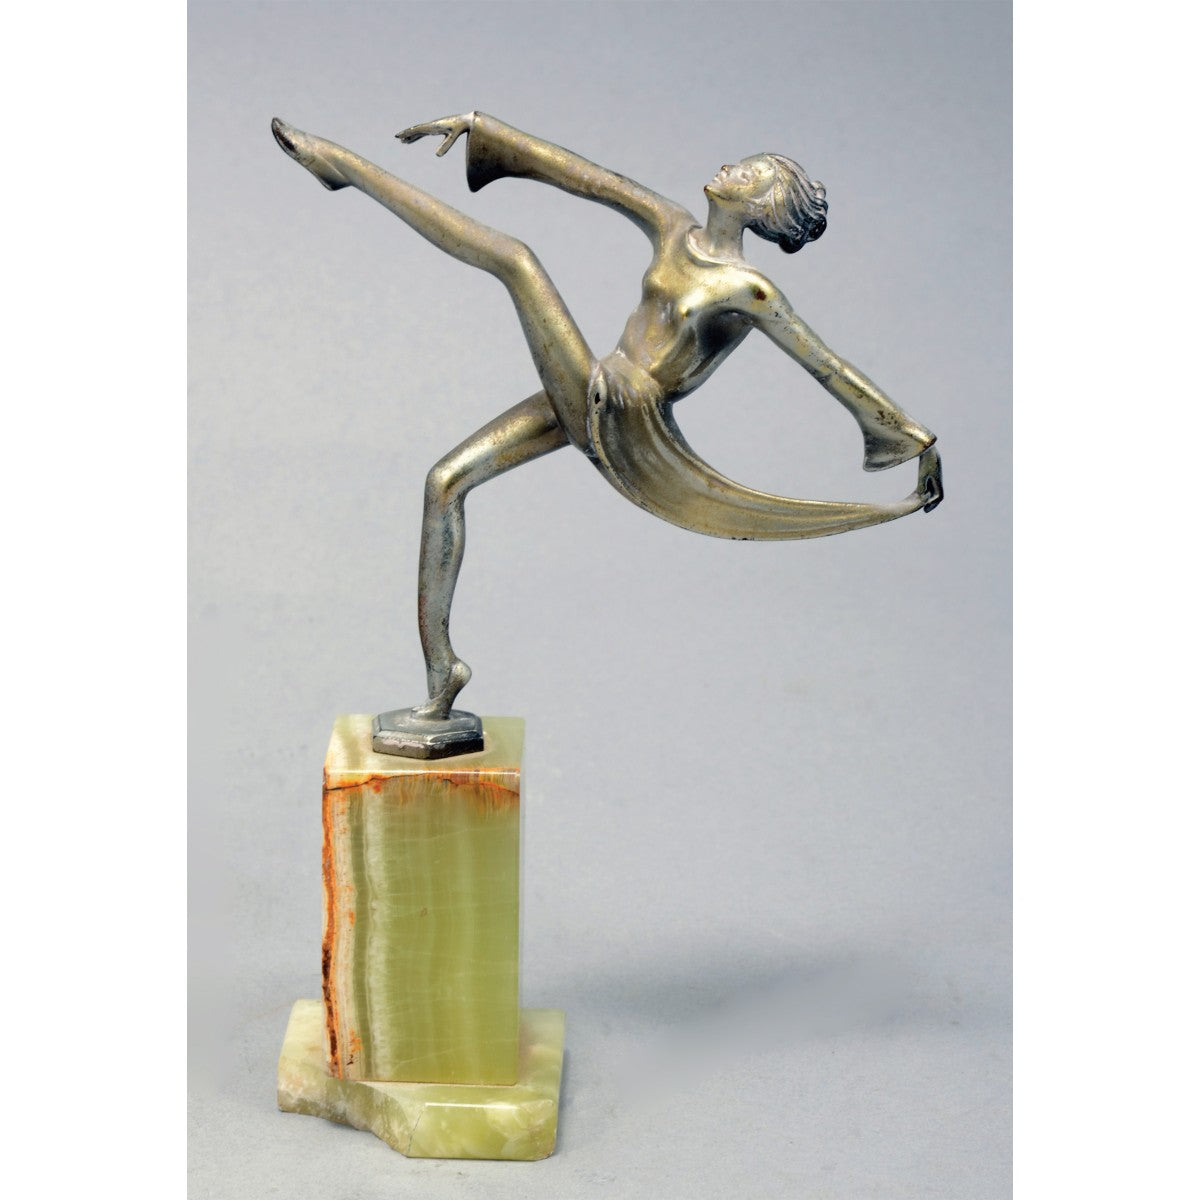 Art Deco Antique, Pewter Sculpture in the Form of a Dancer, Marble Base